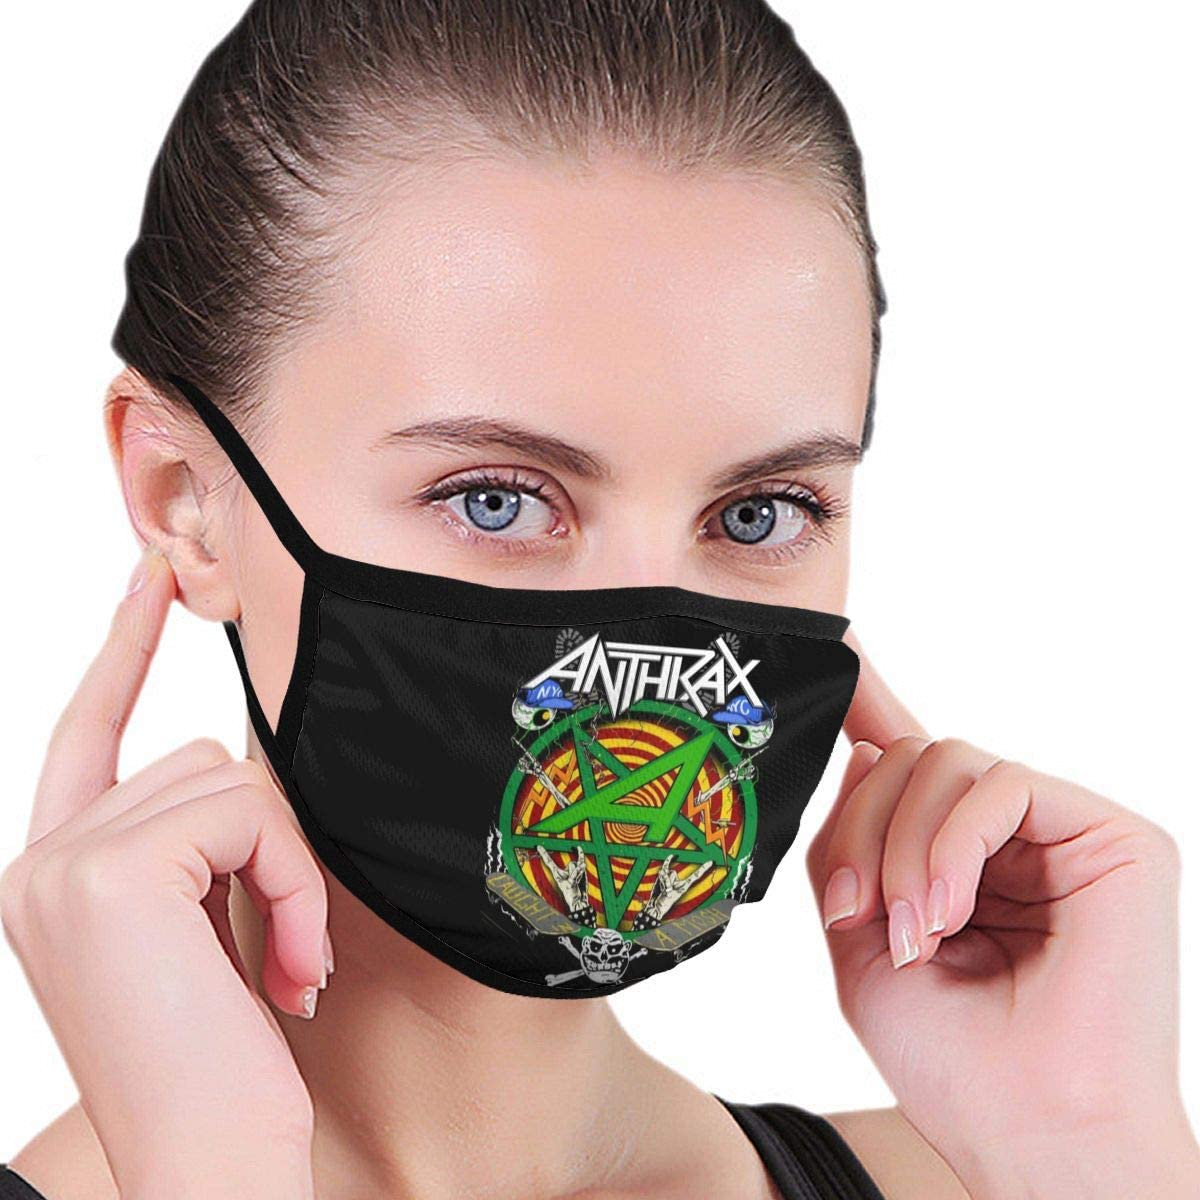 Anthrax Dredd Eagle Men Women Kids Face Cover Windproof Mouth Cover Breathable Cycling Dust Covers